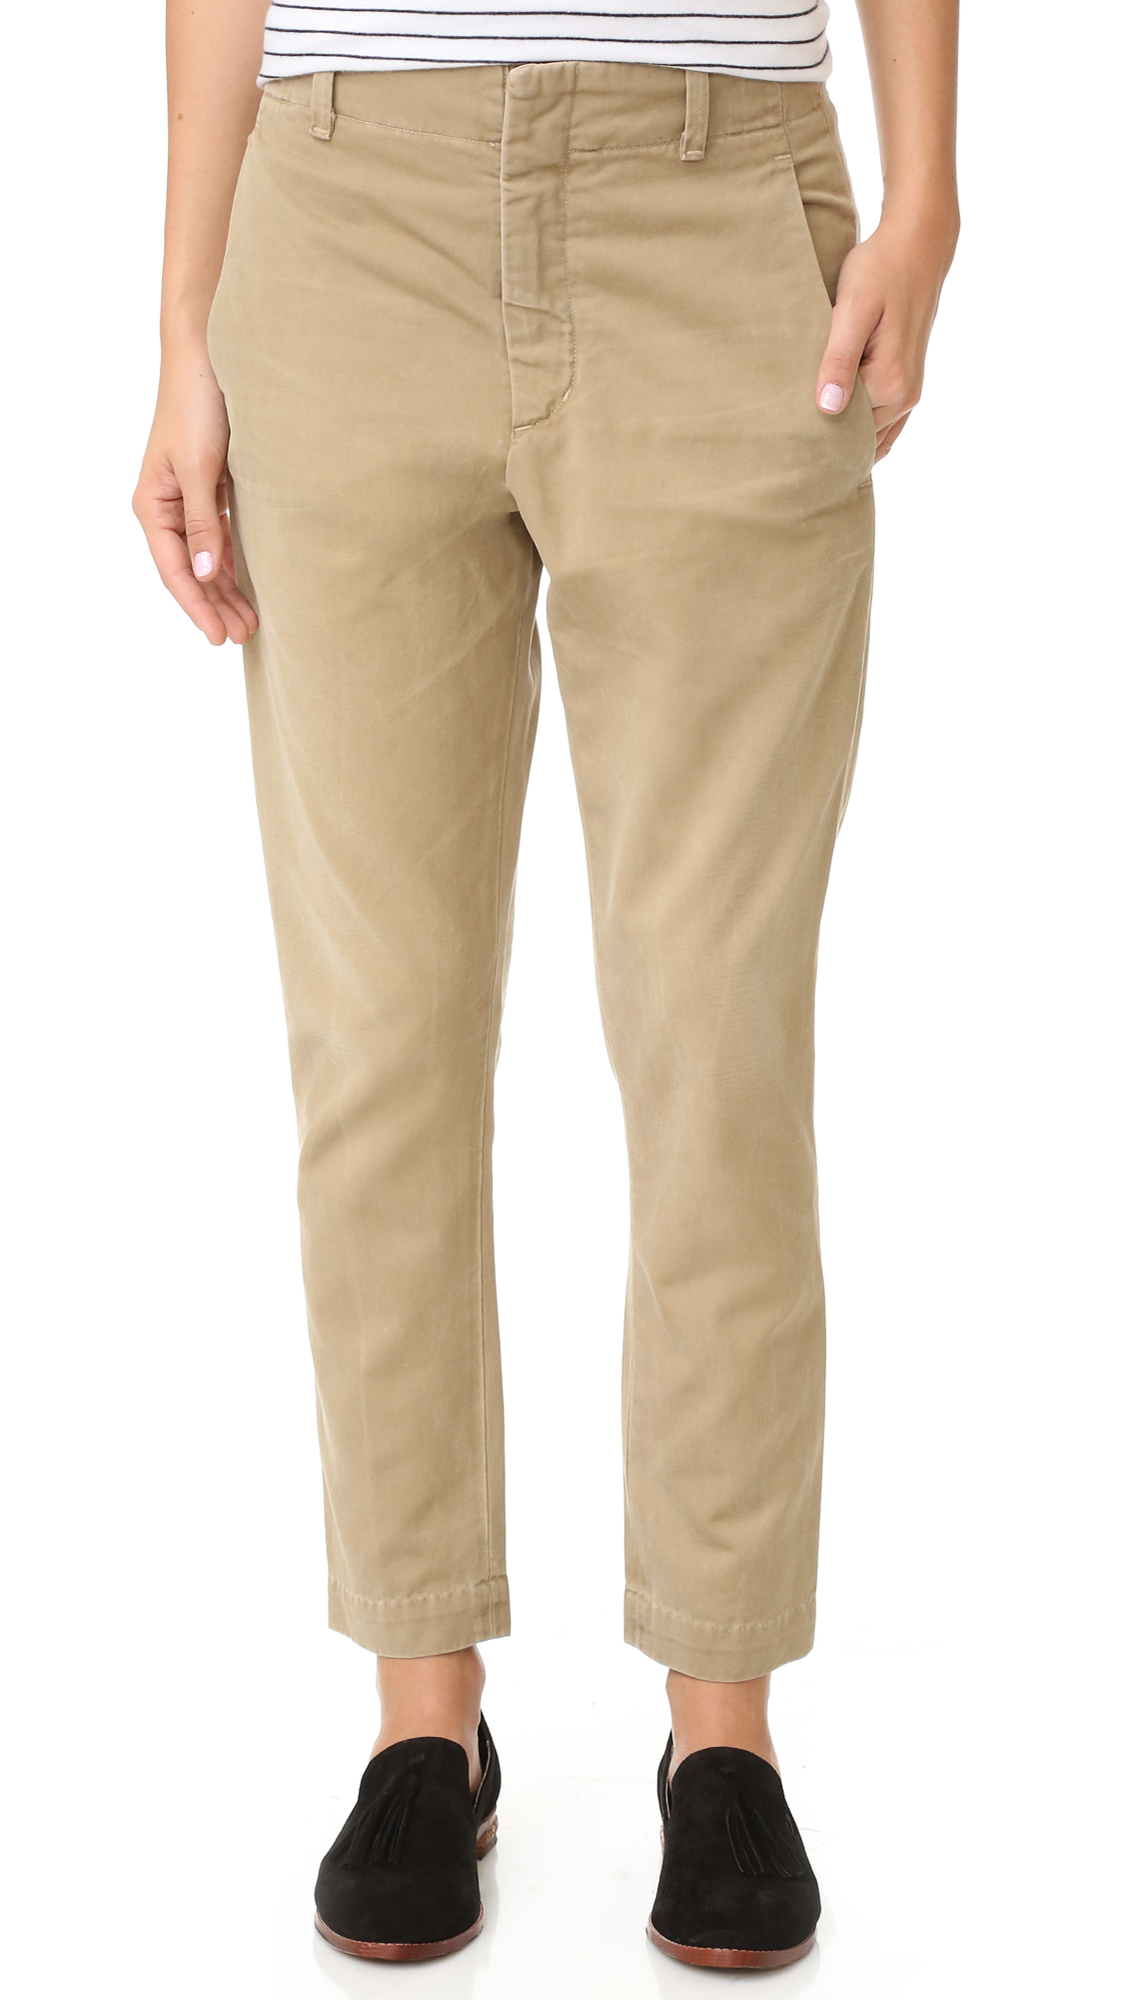 Citizens Of Humanity Surplus Chino Pants - West Point at Shopbop